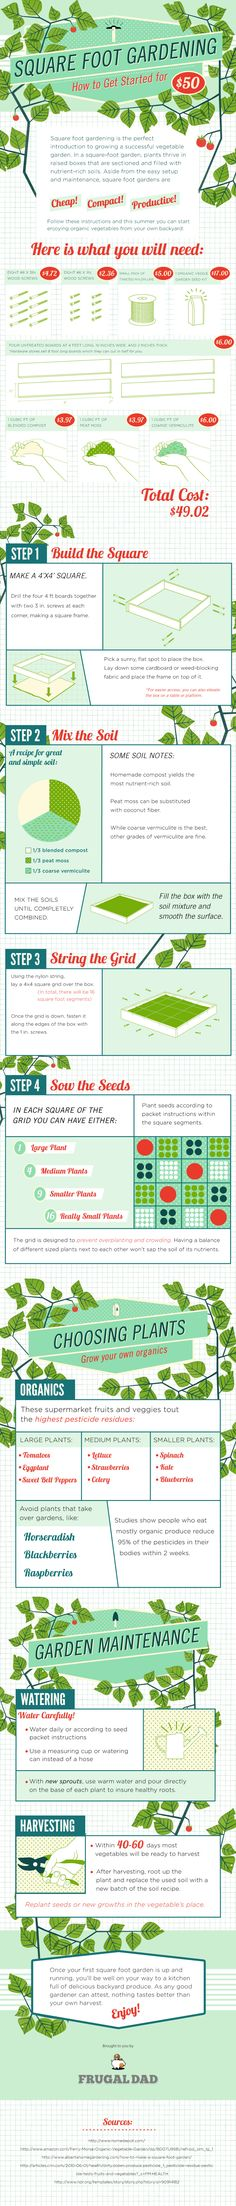 Square Foot Gardening Infographic from Frugal Dad Gardening For Beginners, Gardening Tips, Square Foot Gardening, My Secret Garden, Edible Garden, Easy Garden, Horticulture, Dream Garden, Garden Planning